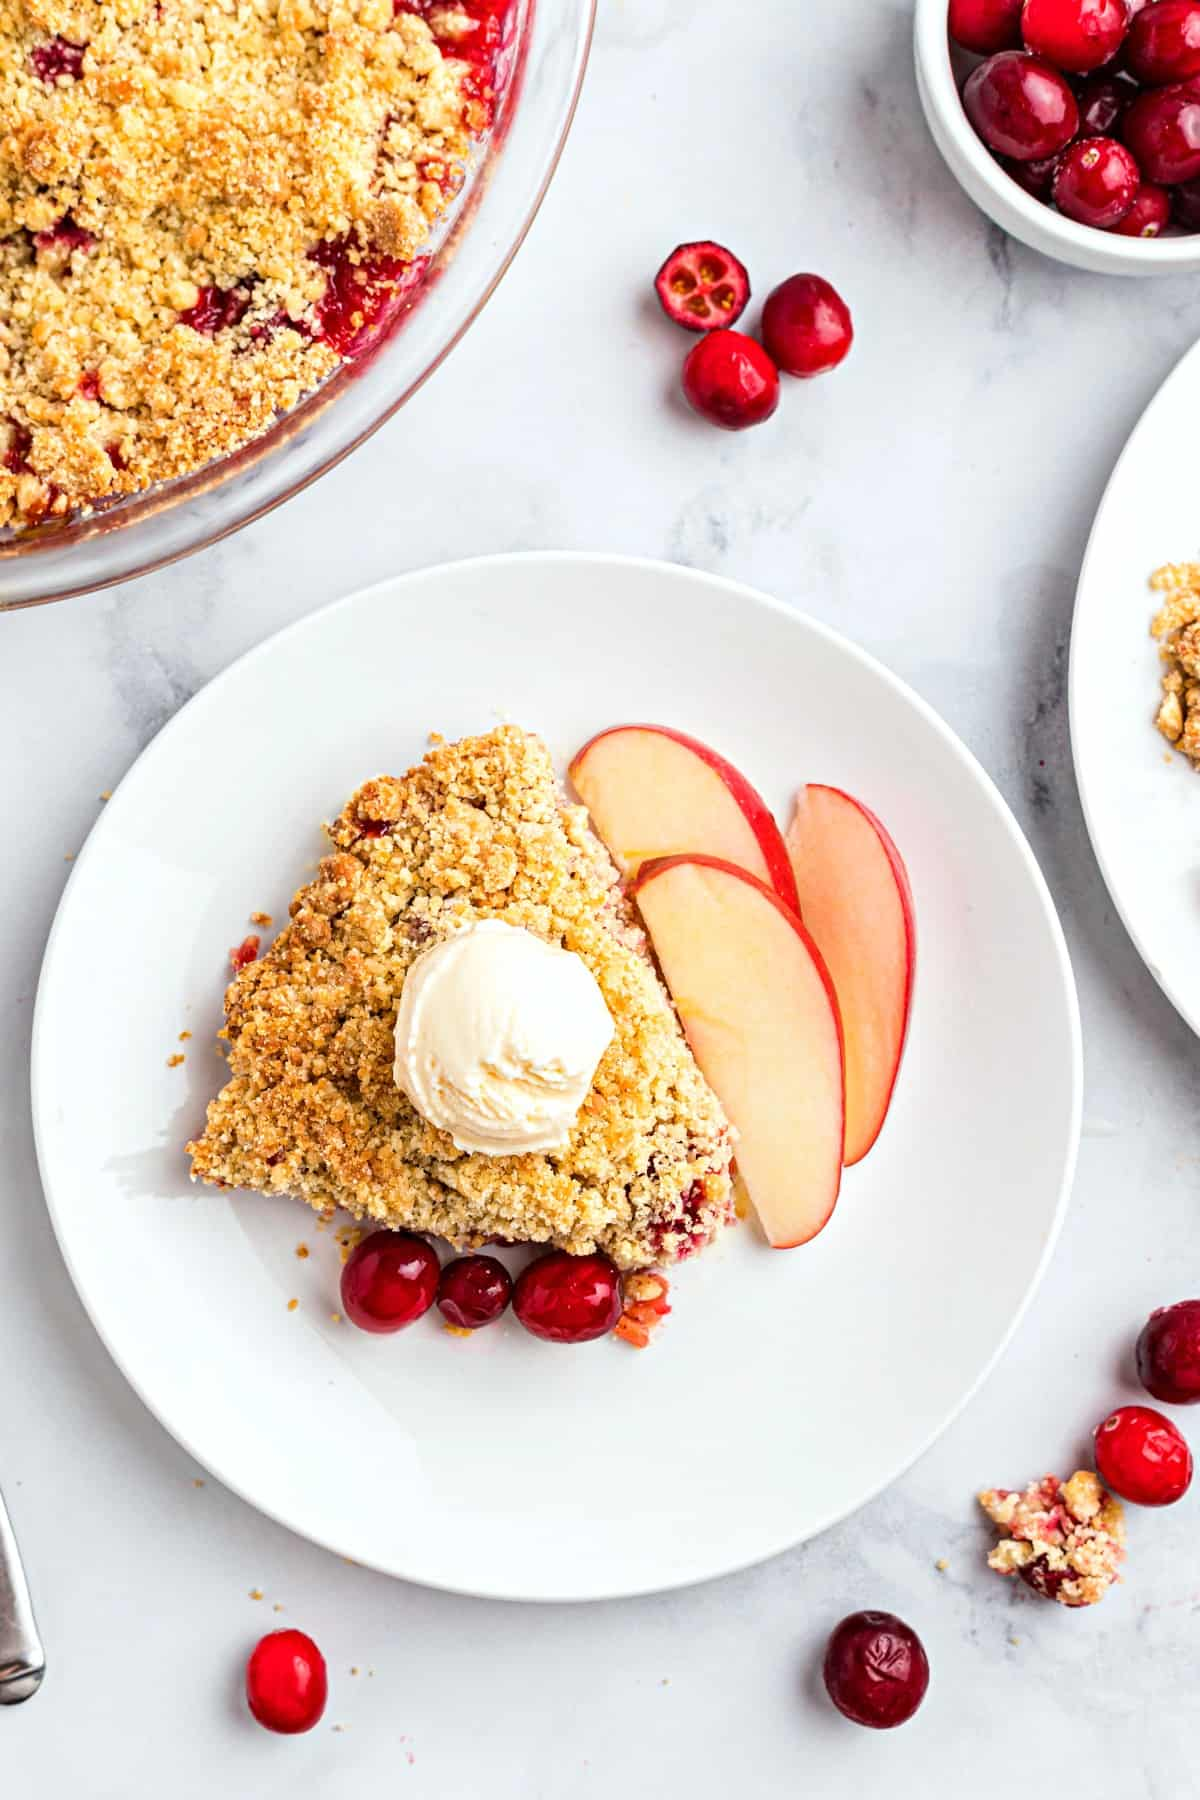 Apple cranberry crumble on a white plate served with vanilla ice cream and fresh apple slices.